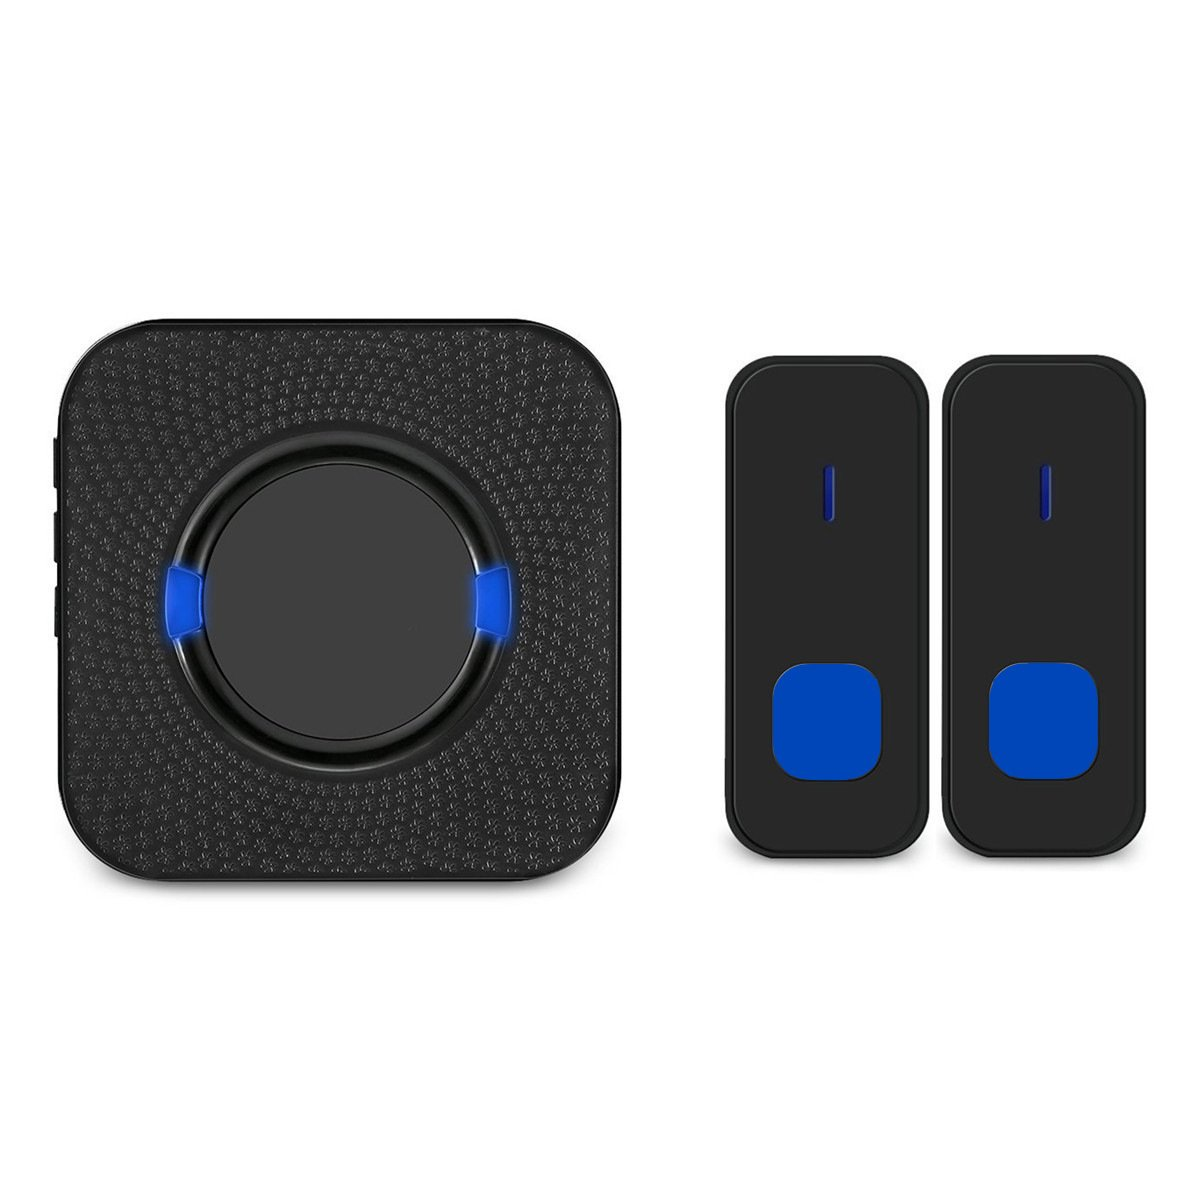 Wireless Doorbell With 2 Push Buttons, YEEMEE Waterproof Plug-in Door Bells Chime Kit with LED Flash at 1000 feet Range,remote control door bell, 55 Melodies to Choose